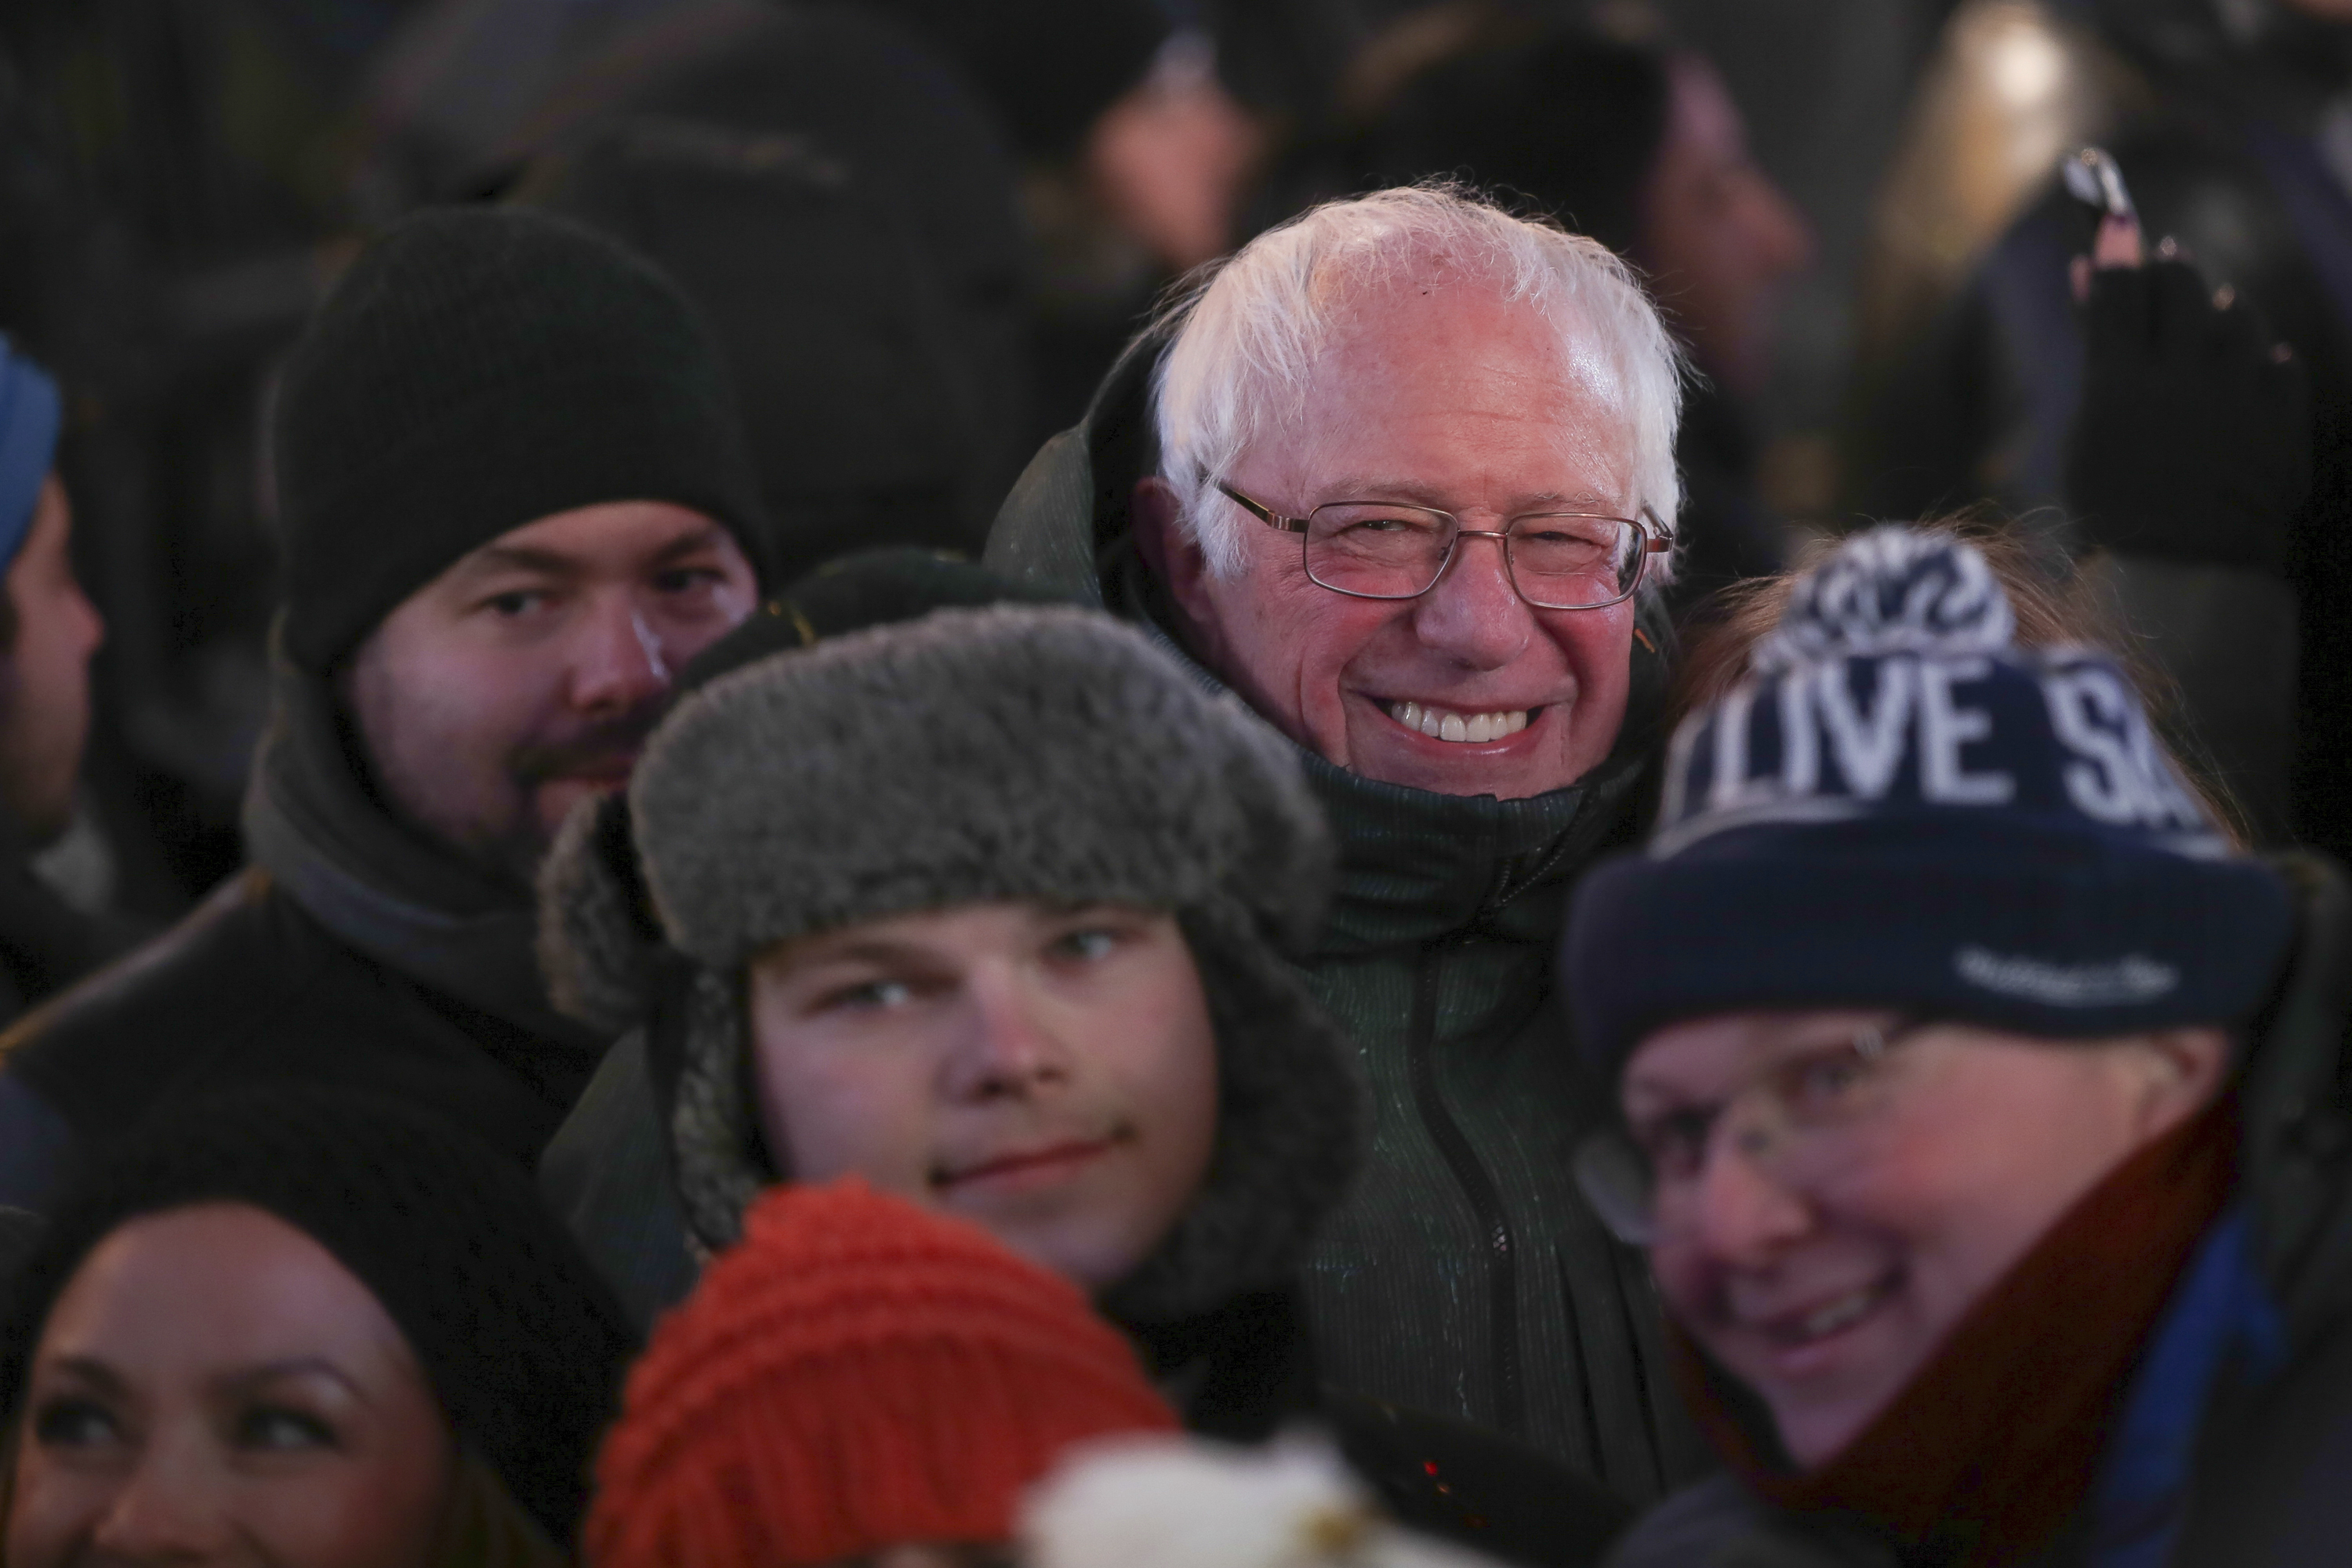 "<div class=""meta image-caption""><div class=""origin-logo origin-image ap""><span>AP</span></div><span class=""caption-text"">Senator Bernie Sanders attends the New Year's Eve celebration in Times Square on Sunday, Dec. 31, 2017, in New York. (Photo by Brent N. Clarke/Invision/AP) (Brent N. Clarke/Invision/AP)</span></div>"